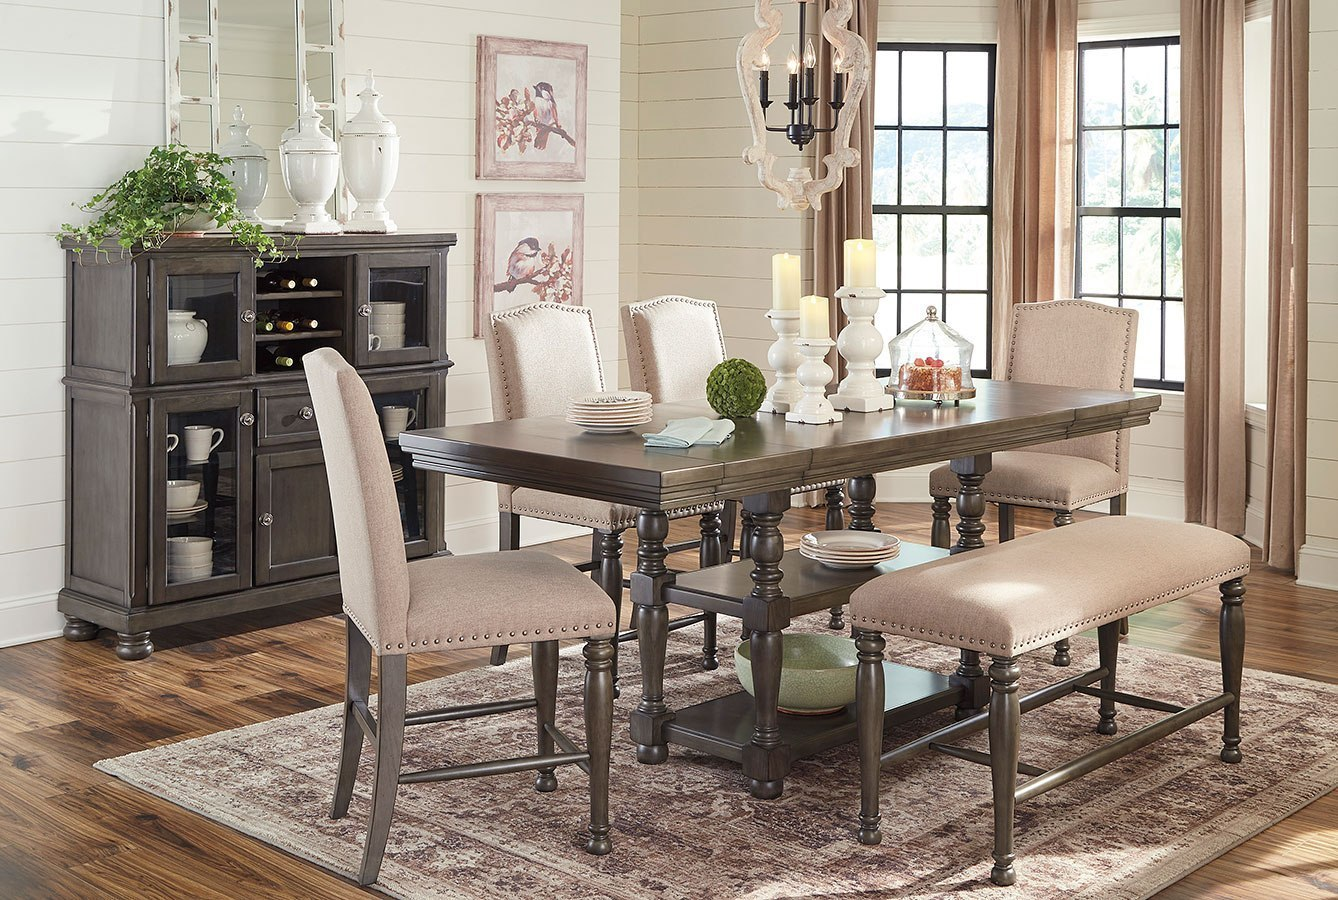 Audberry Counter Height Dining Room Set W Bench Signature